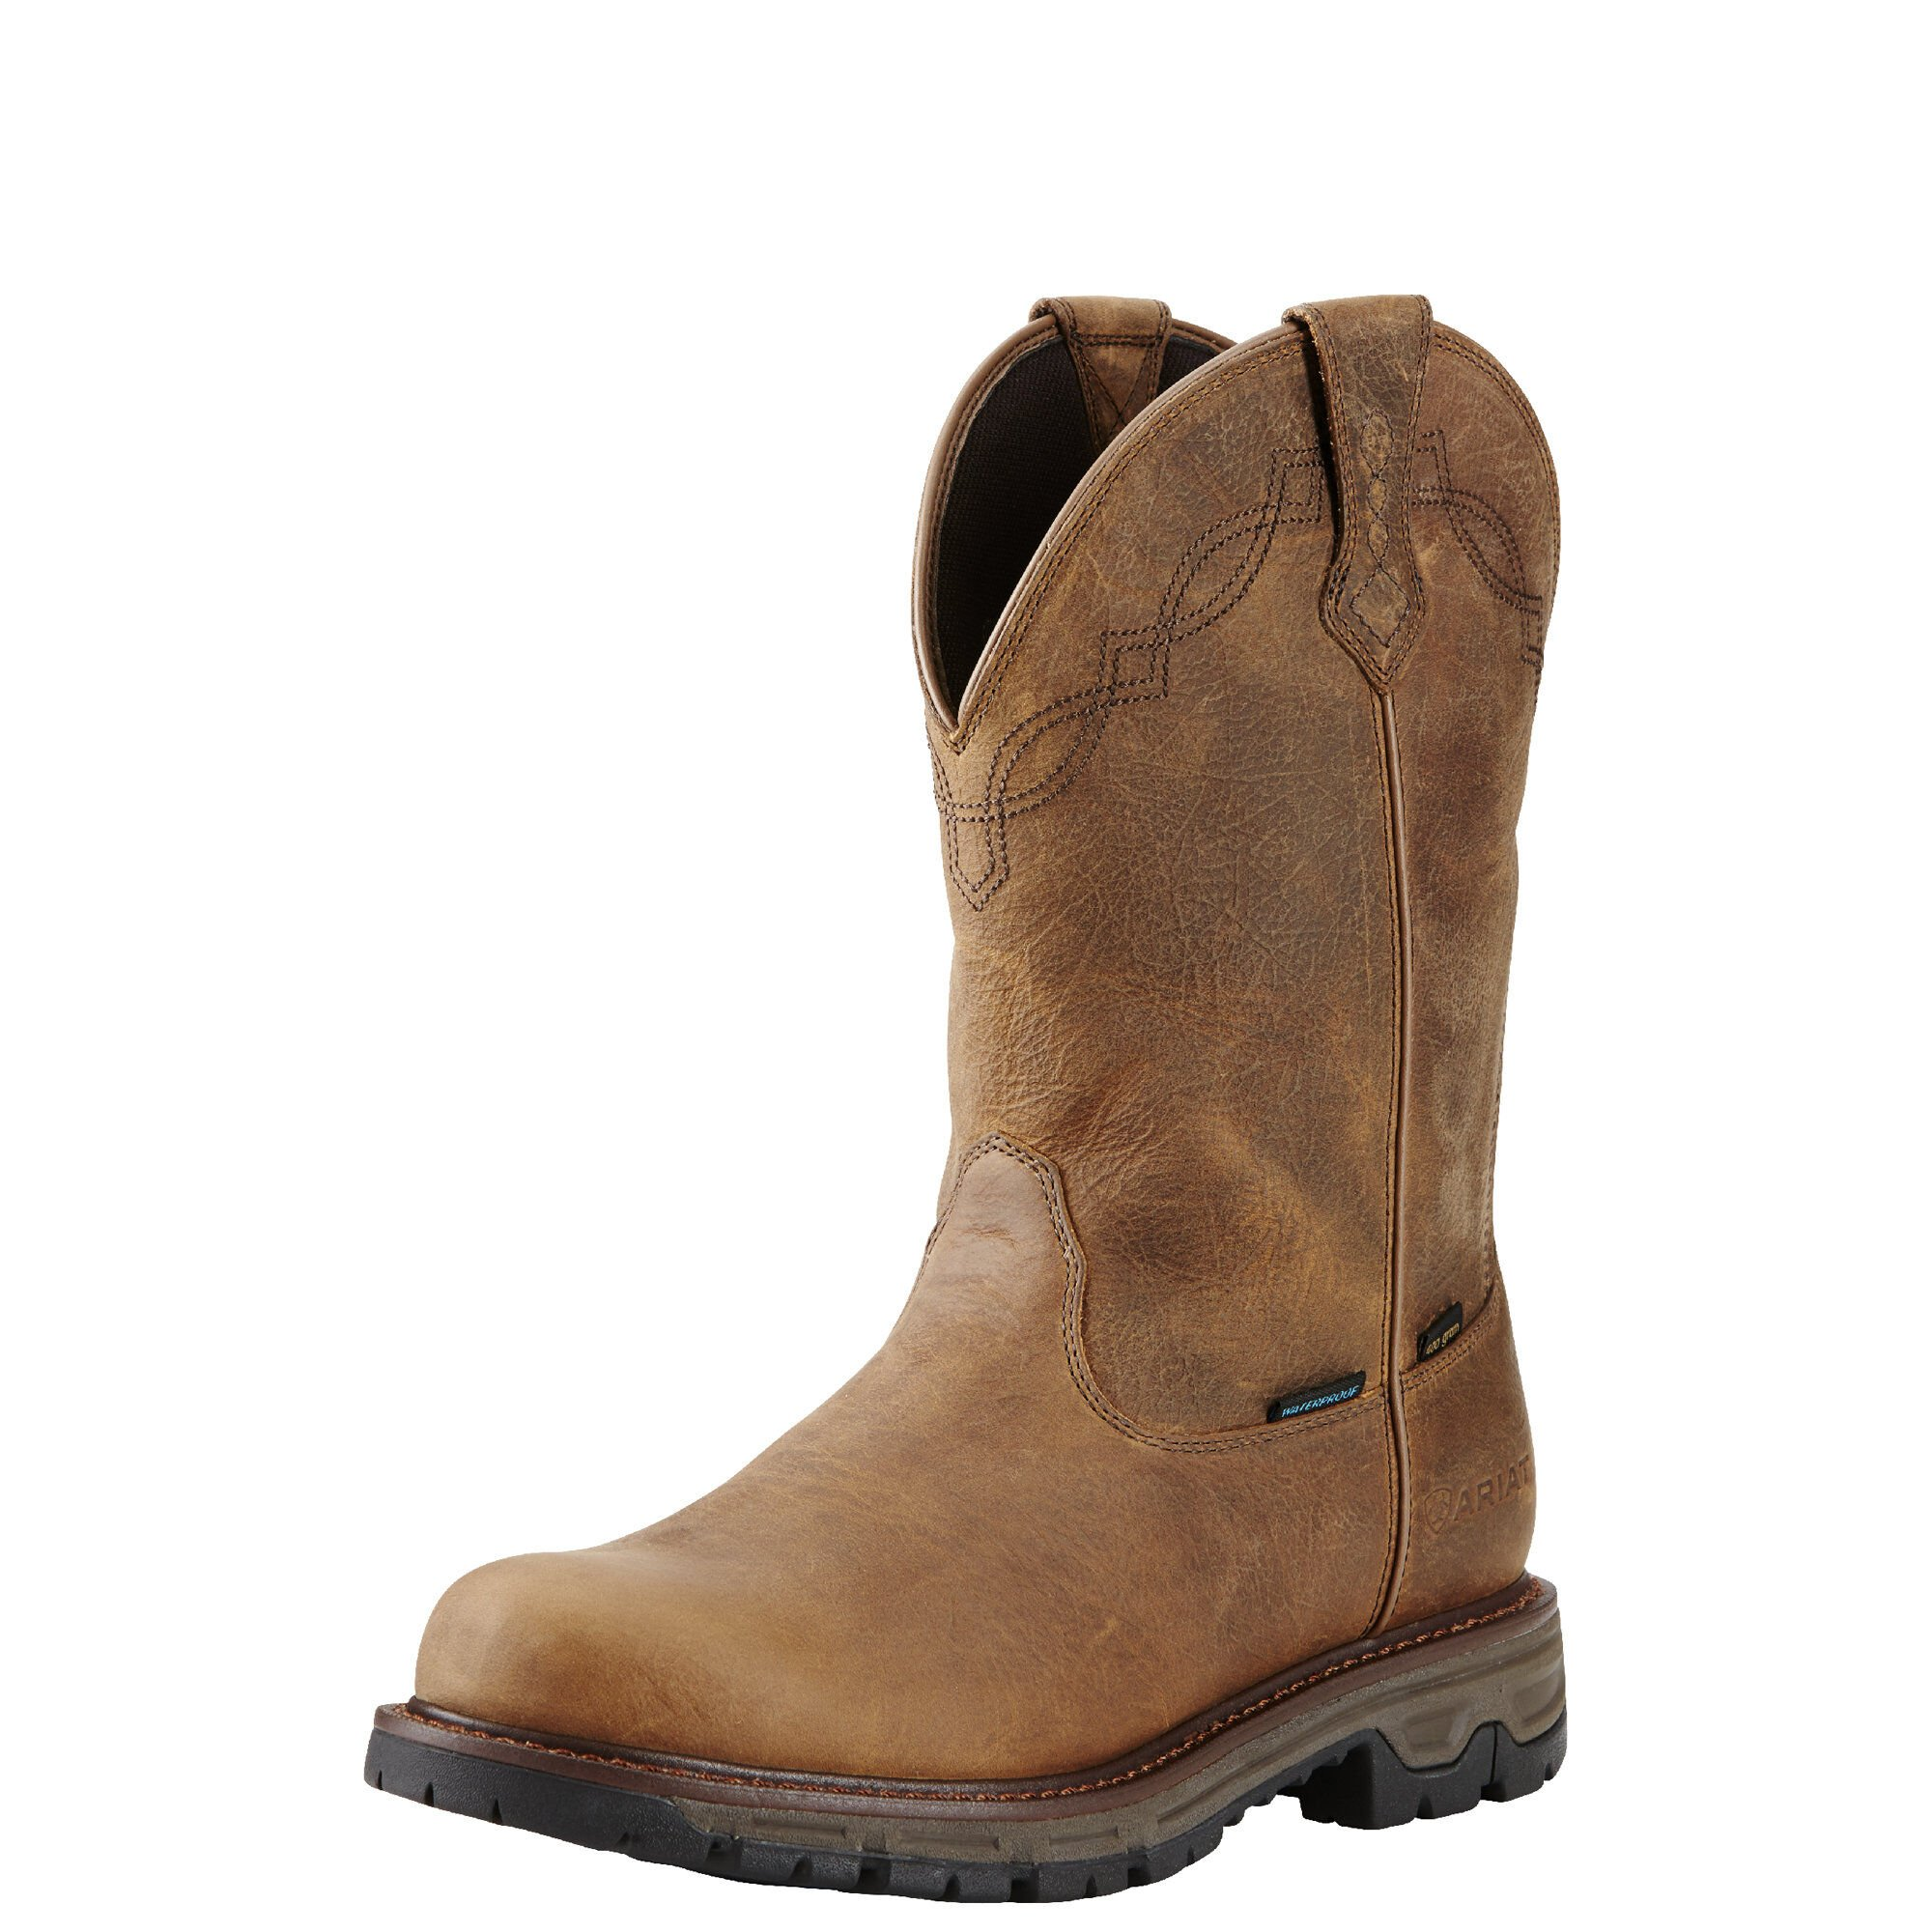 Conquest Waterproof 400g Hunting Boot